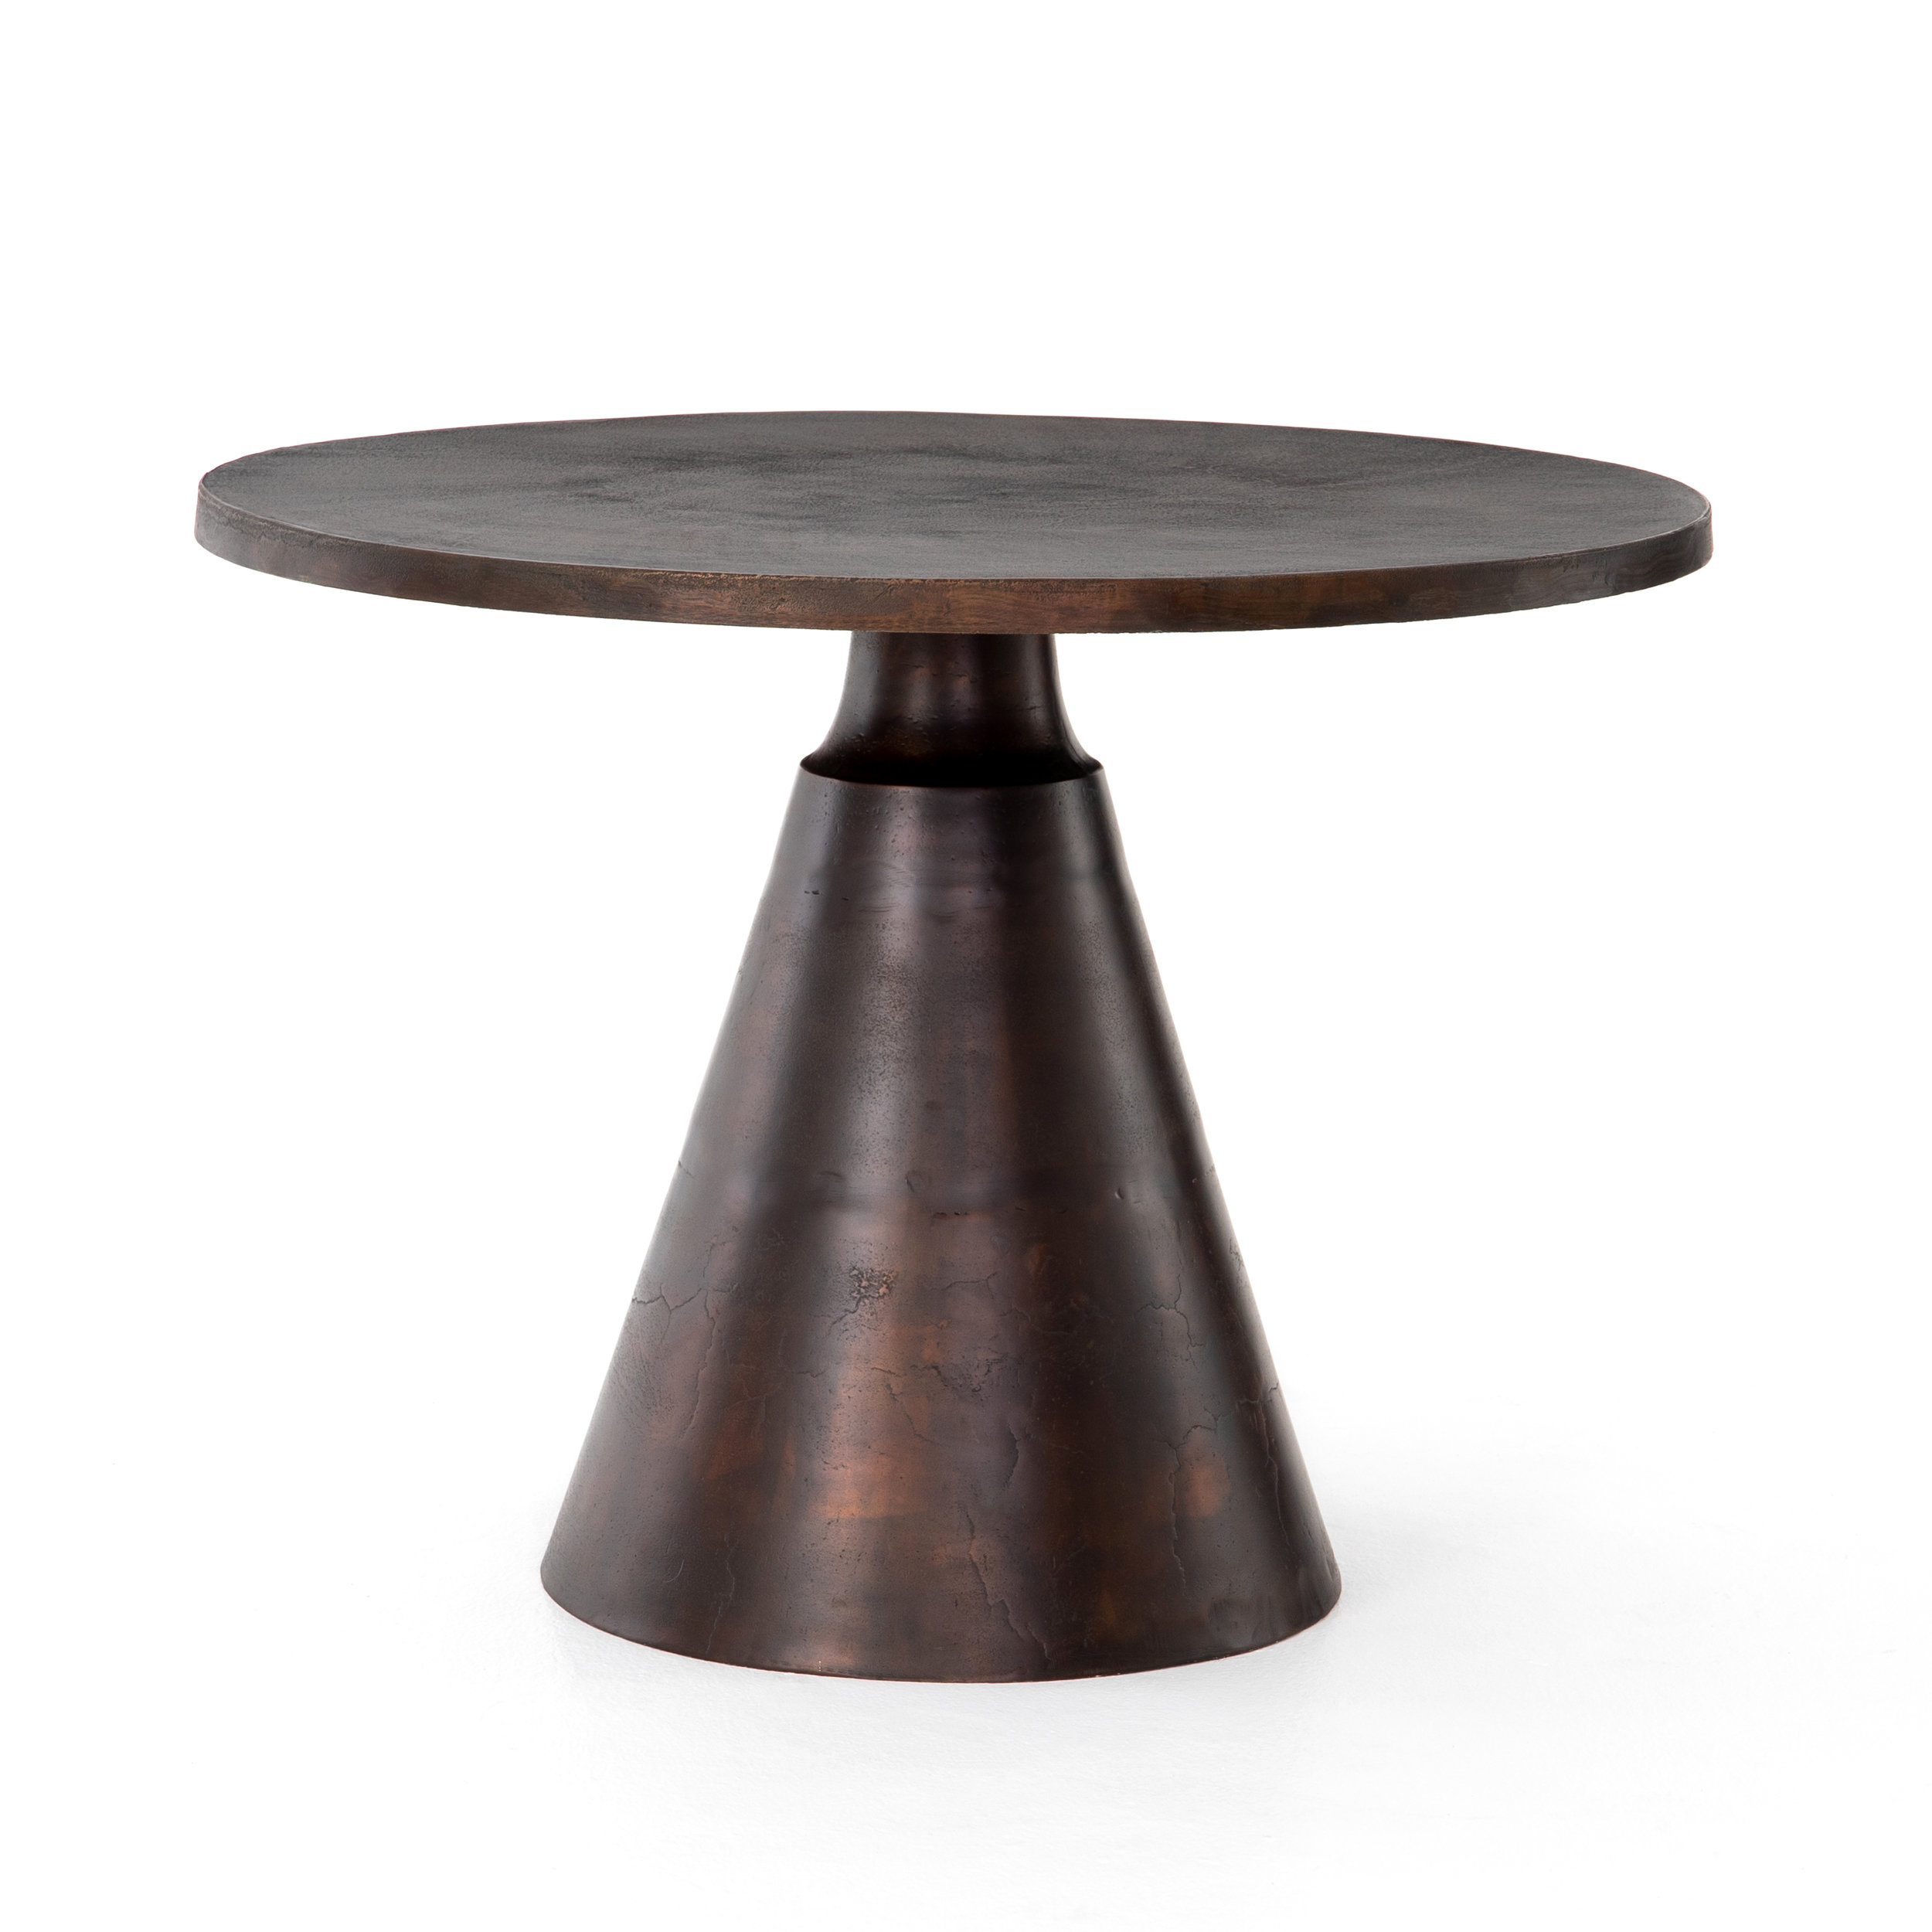 Mina Bistro Table    |  This solid aluminum table is finished in antique ruse for a visually arresting look, indoors of out. We recommend covering this industrial beauty during inclement weather.